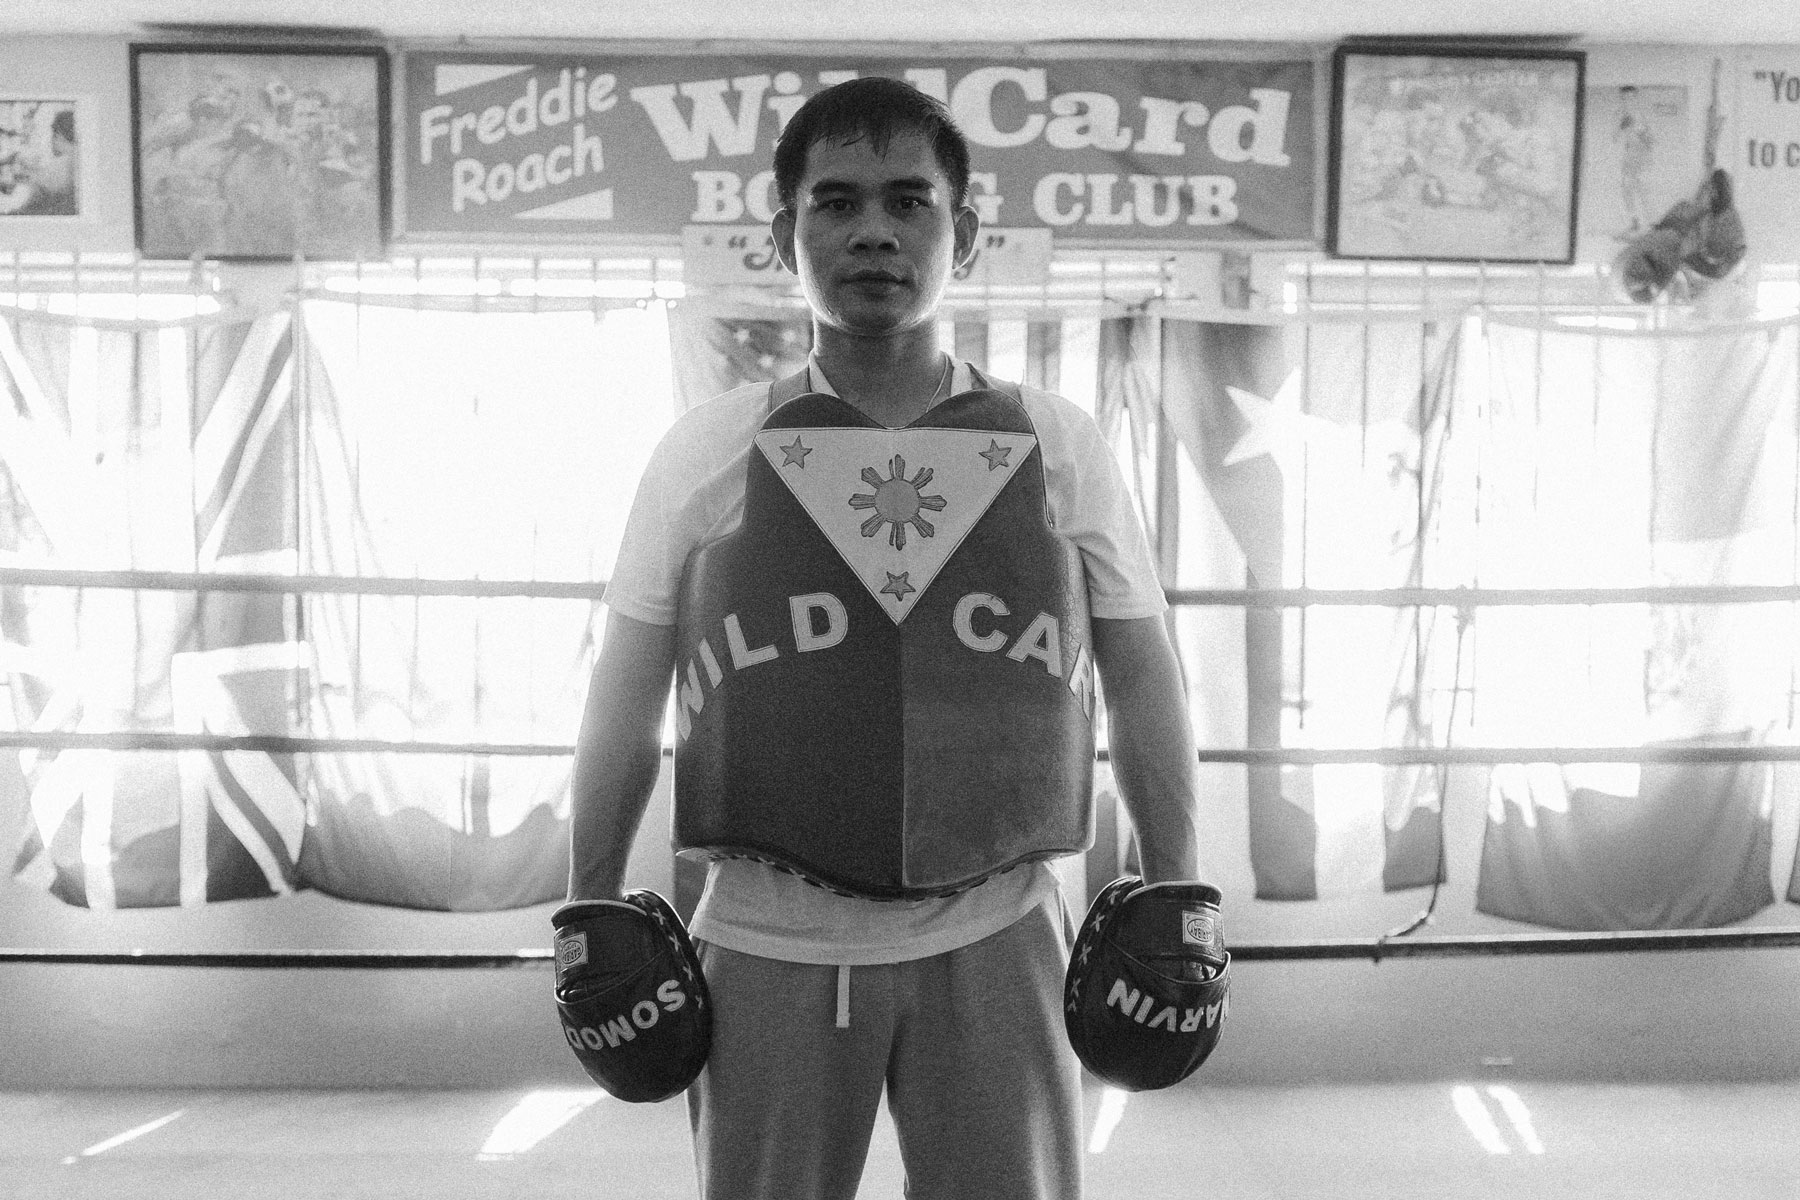 Marvin Somodio Rituals of Sport Reigning Champ Wild Card Boxing